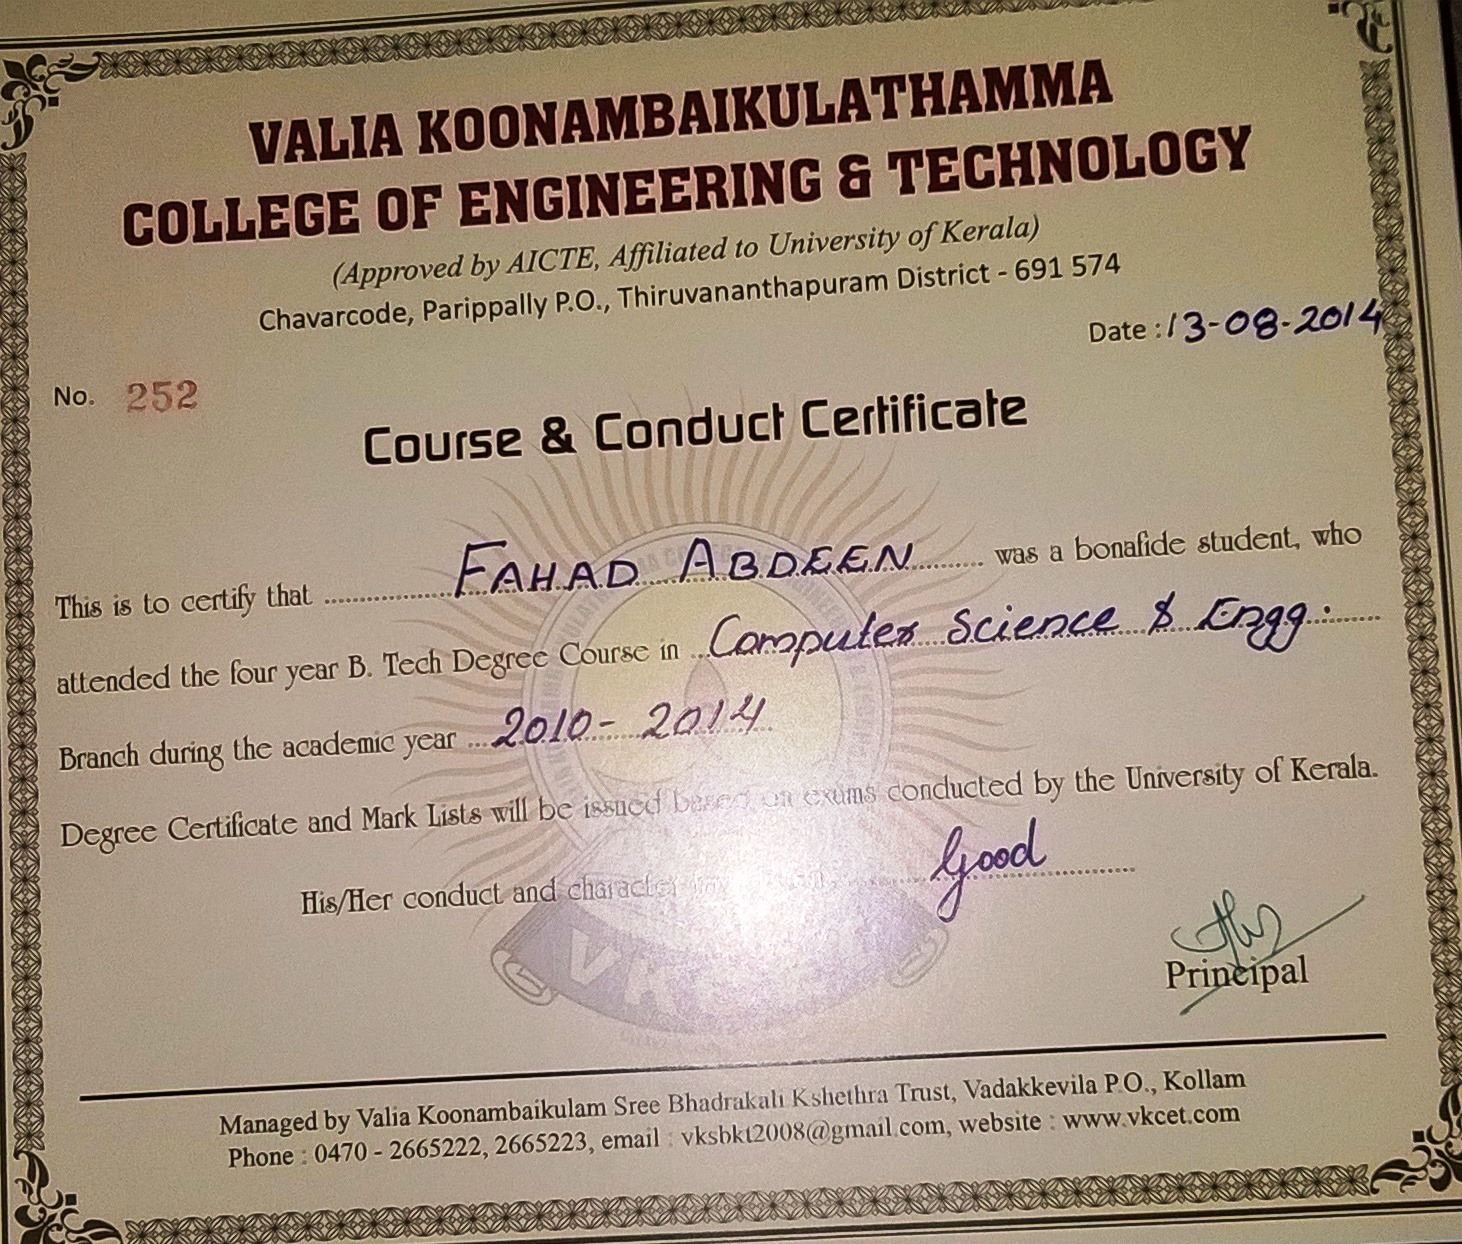 Fahad abdeen bayt btech in computer science and technology course completed xflitez Gallery